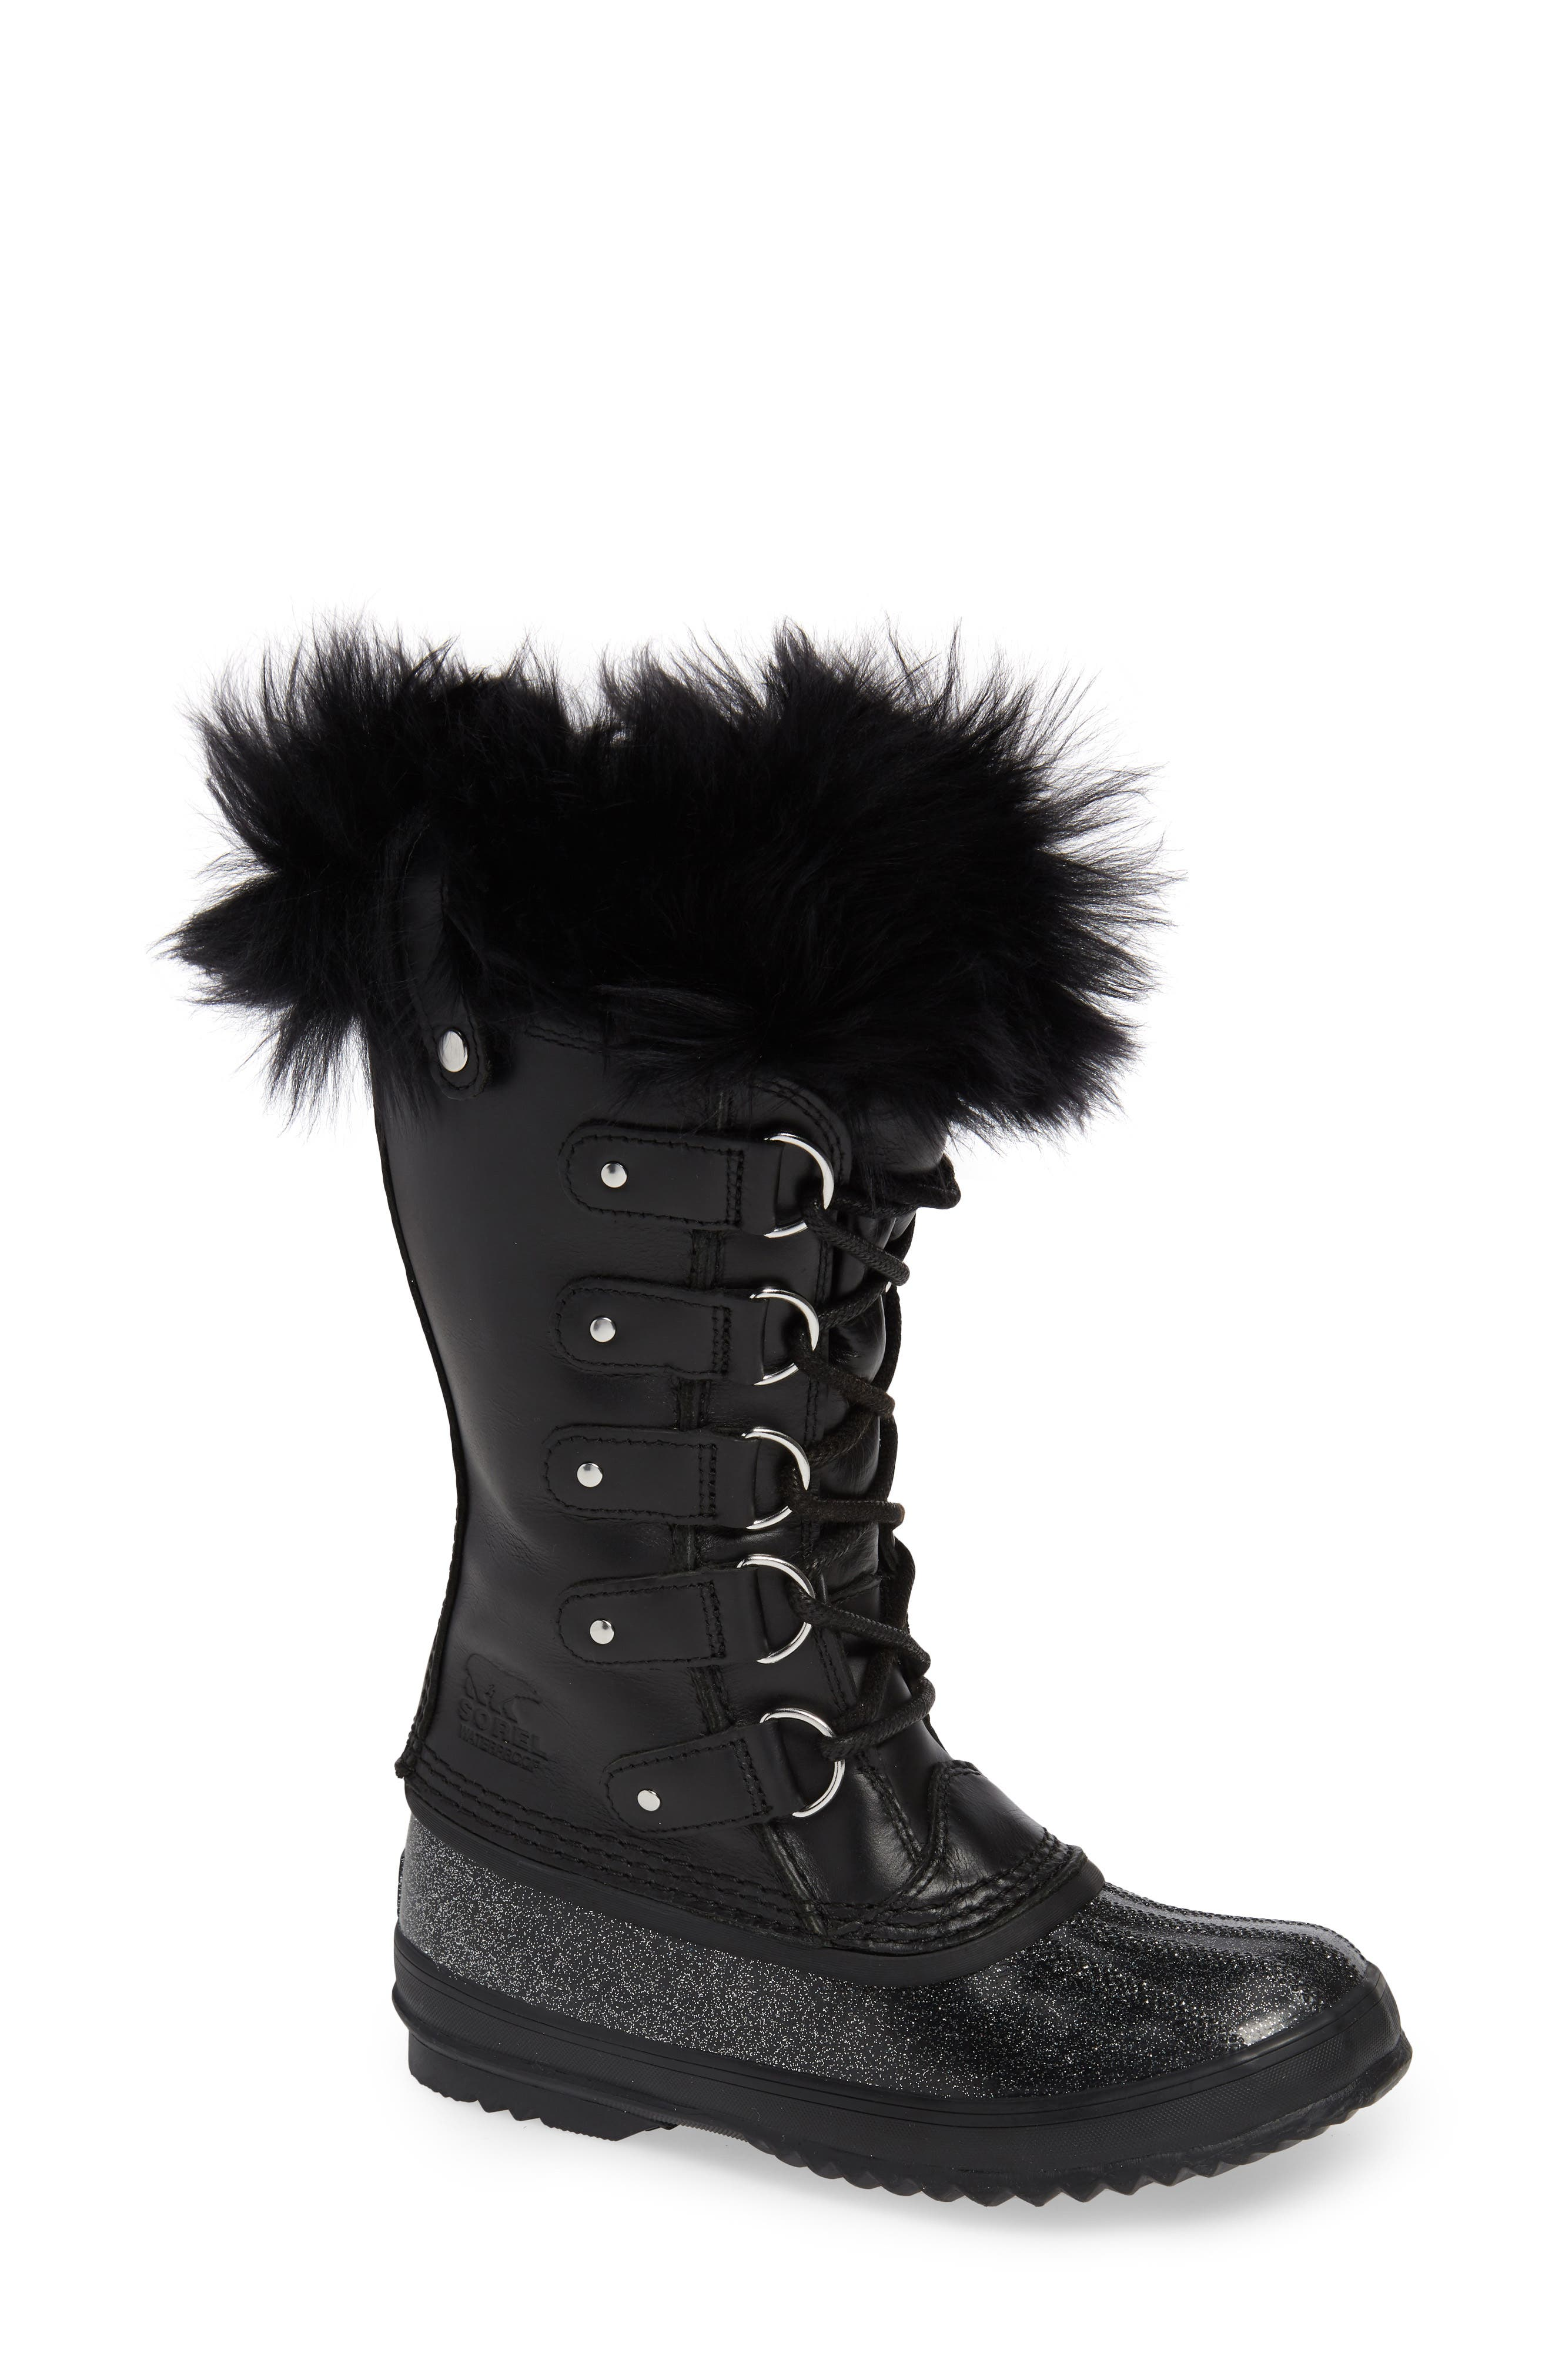 Joan of Arctic<sup>™</sup> Lux Waterproof Winter Boot with Genuine Shearling,                             Main thumbnail 1, color,                             010